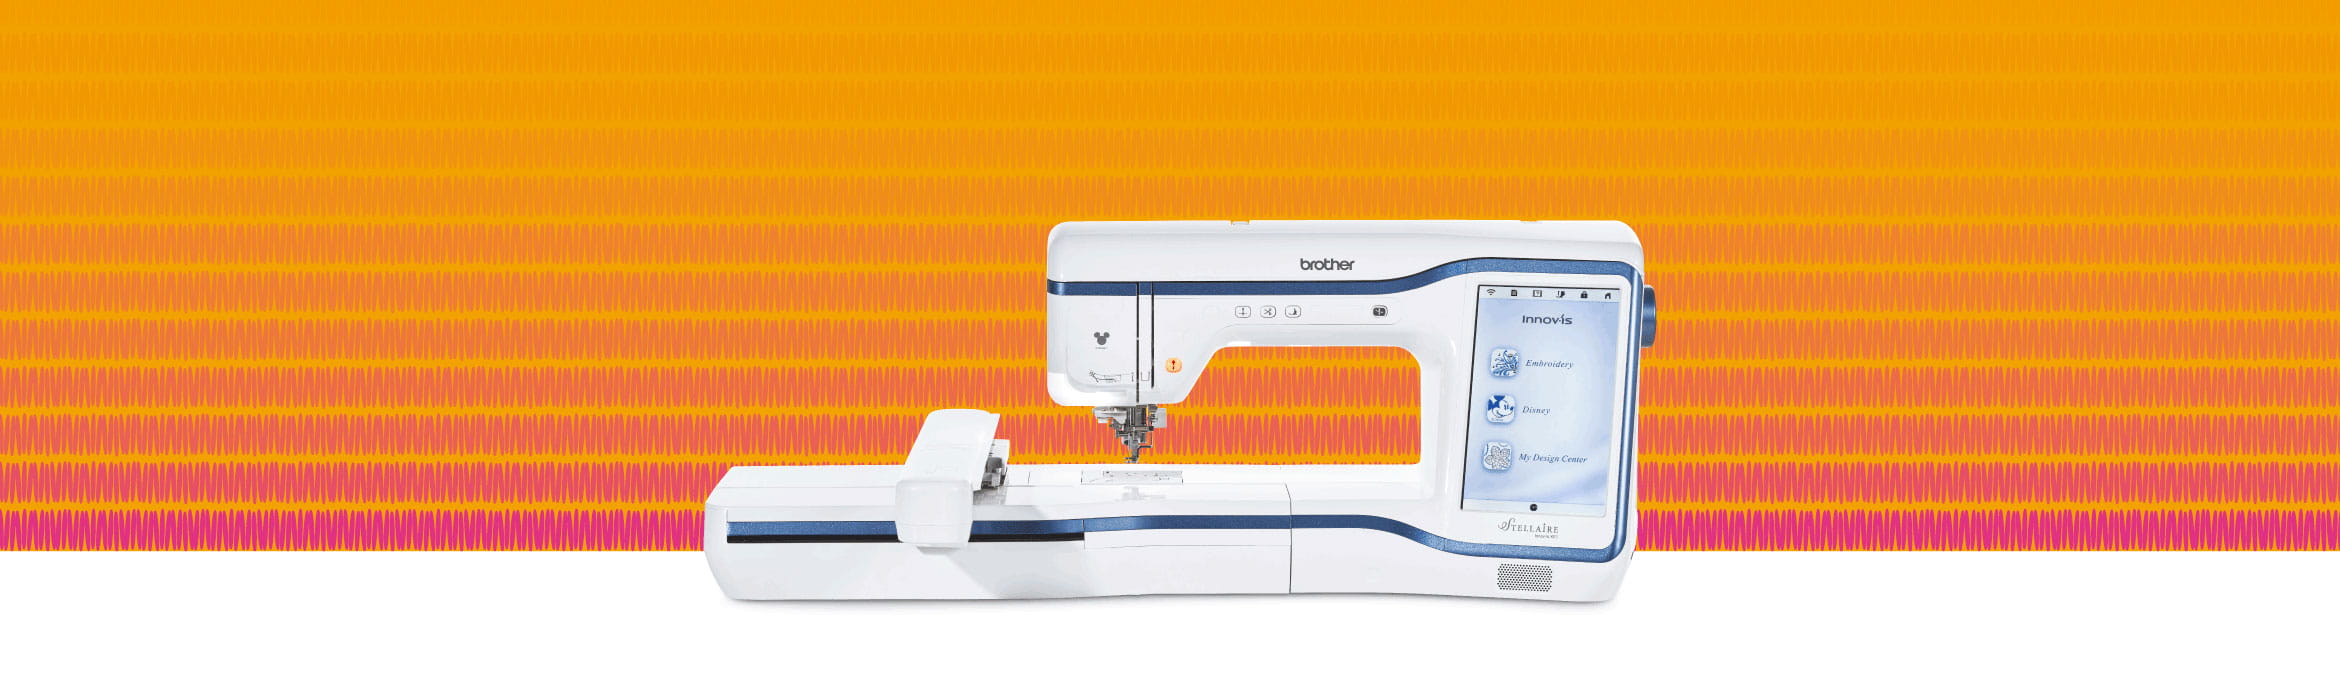 Stellaire XE1 embroidery machine on orange and pink background